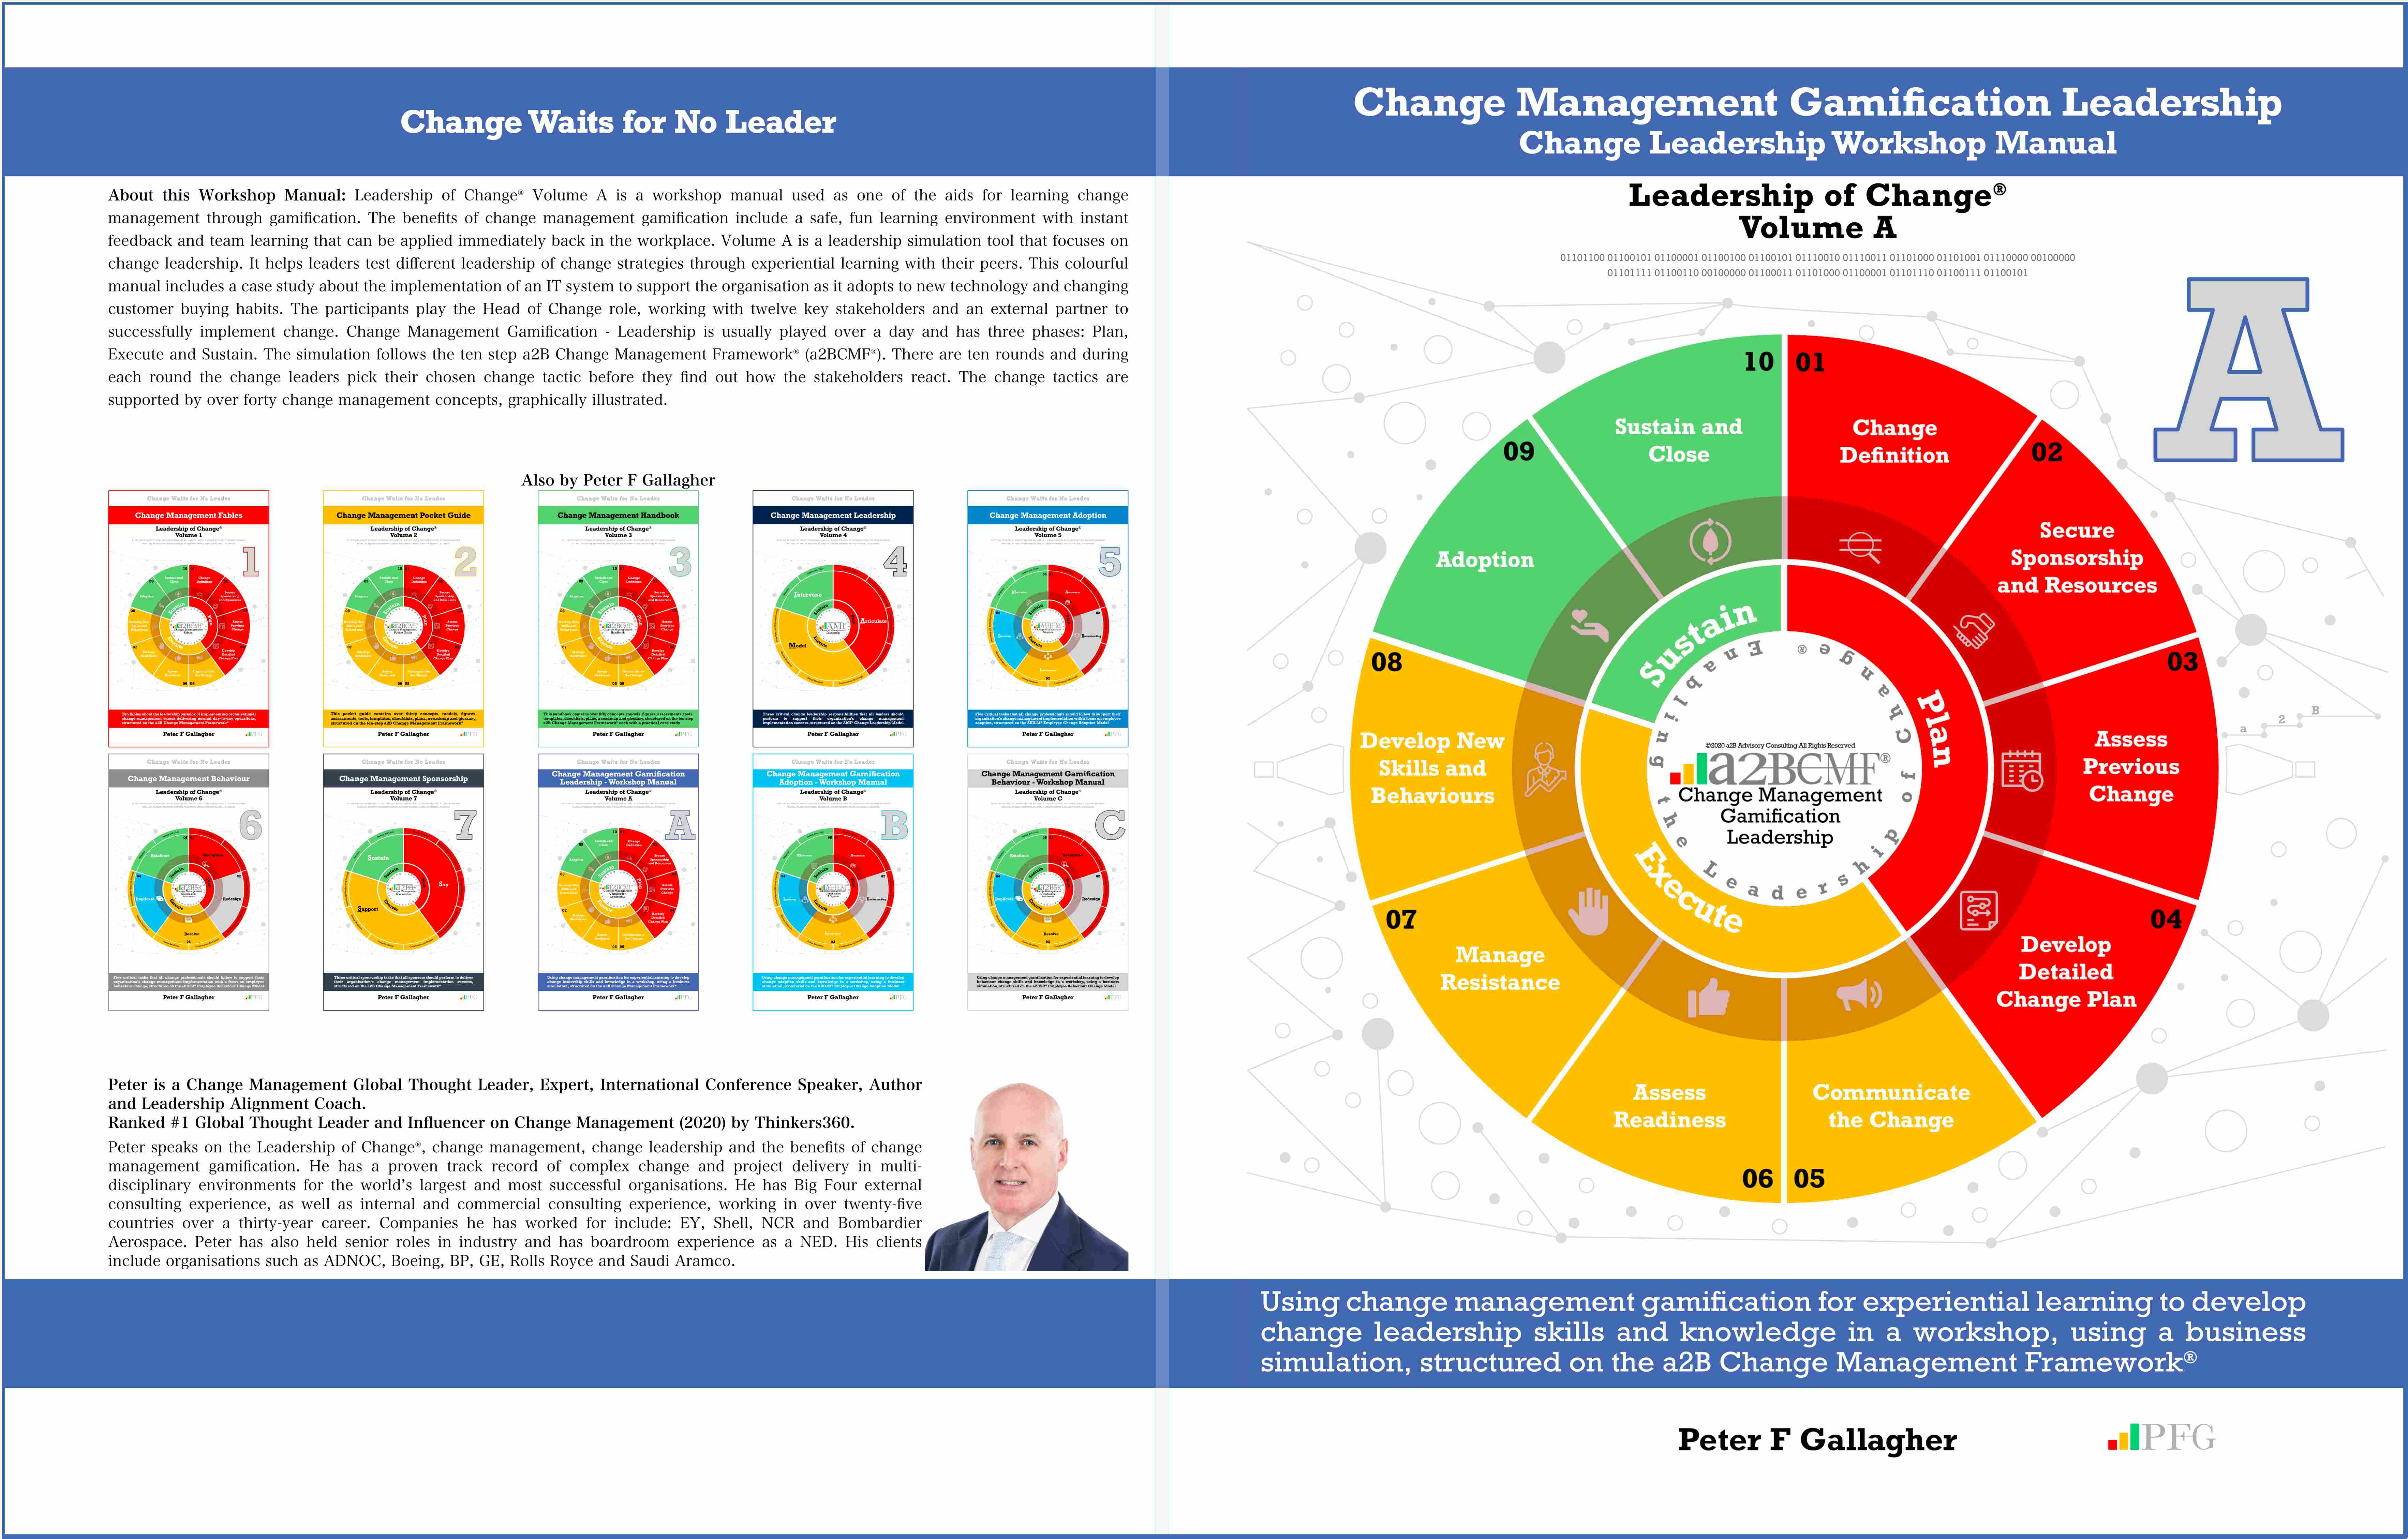 Change Management Gamification Leadership, Change Management Book, Change Management Books, Change M